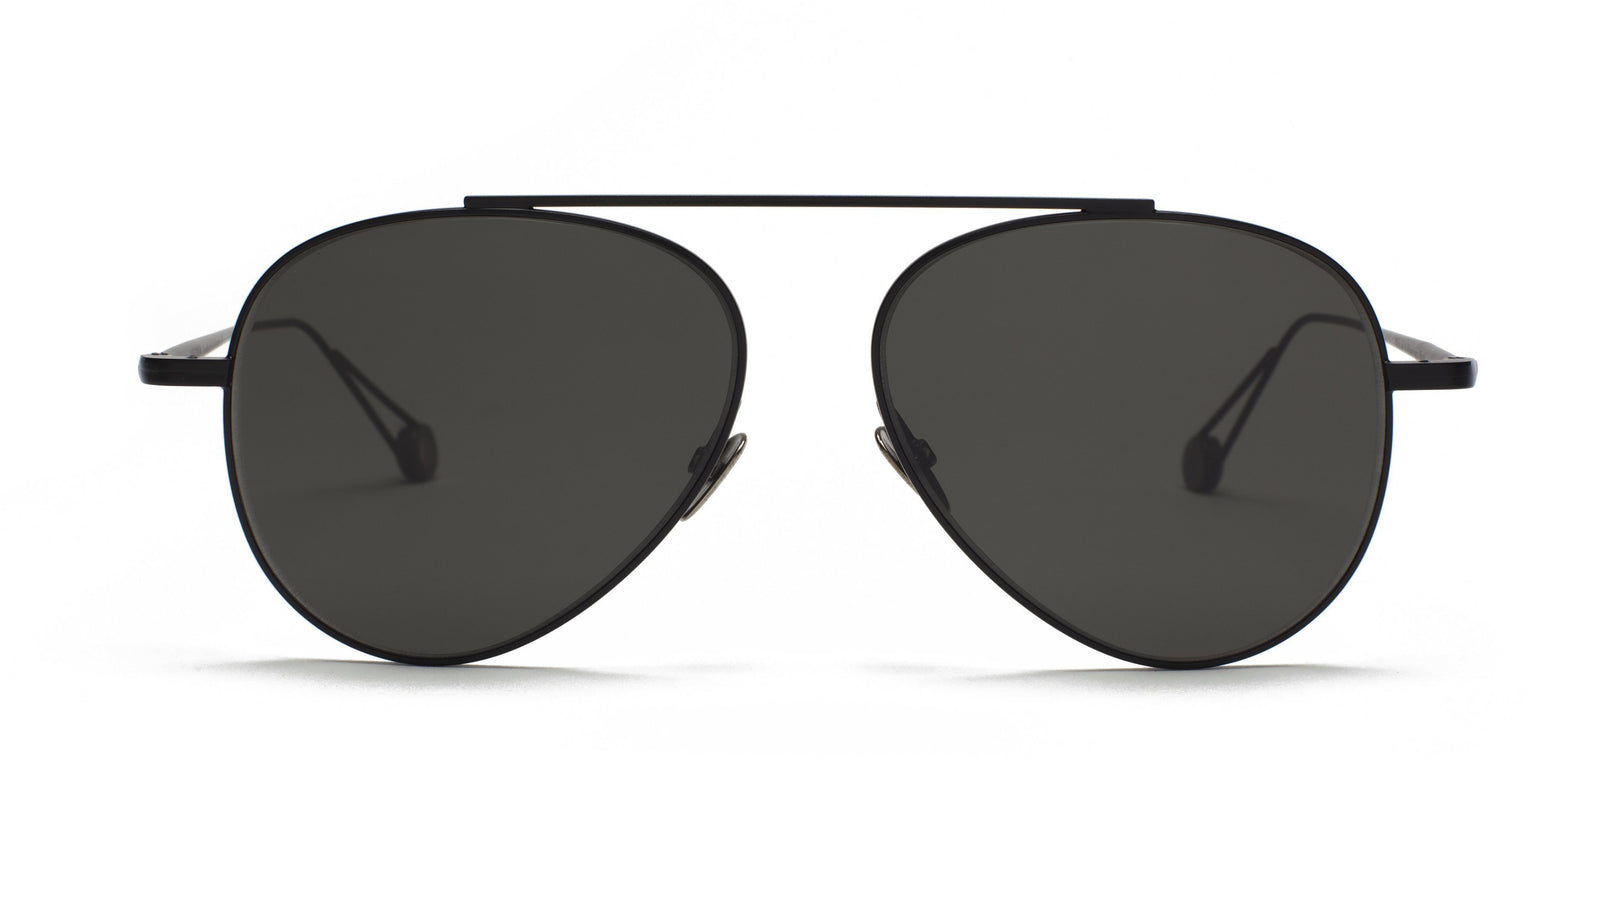 Ahlem Place de la Republique Sunglasses Black